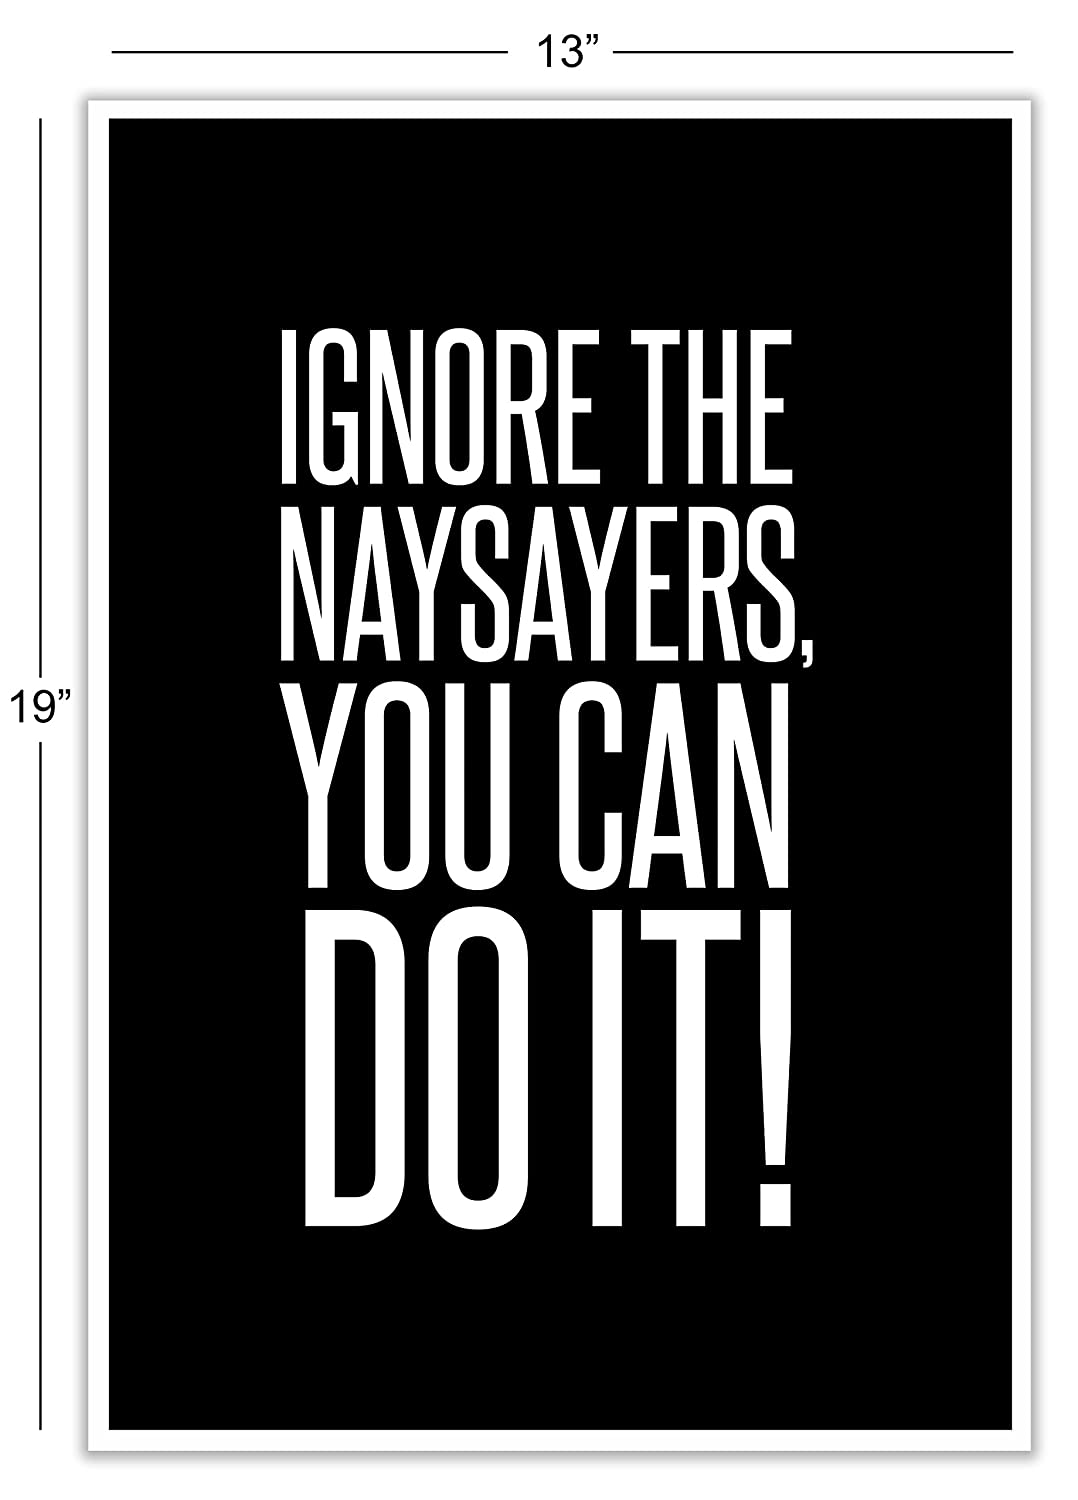 Ignore the naysayers 13 x 19 famous quotes 3 poster set teen boy girl sports wall art decorative prints black white workout fitness wall decor home office